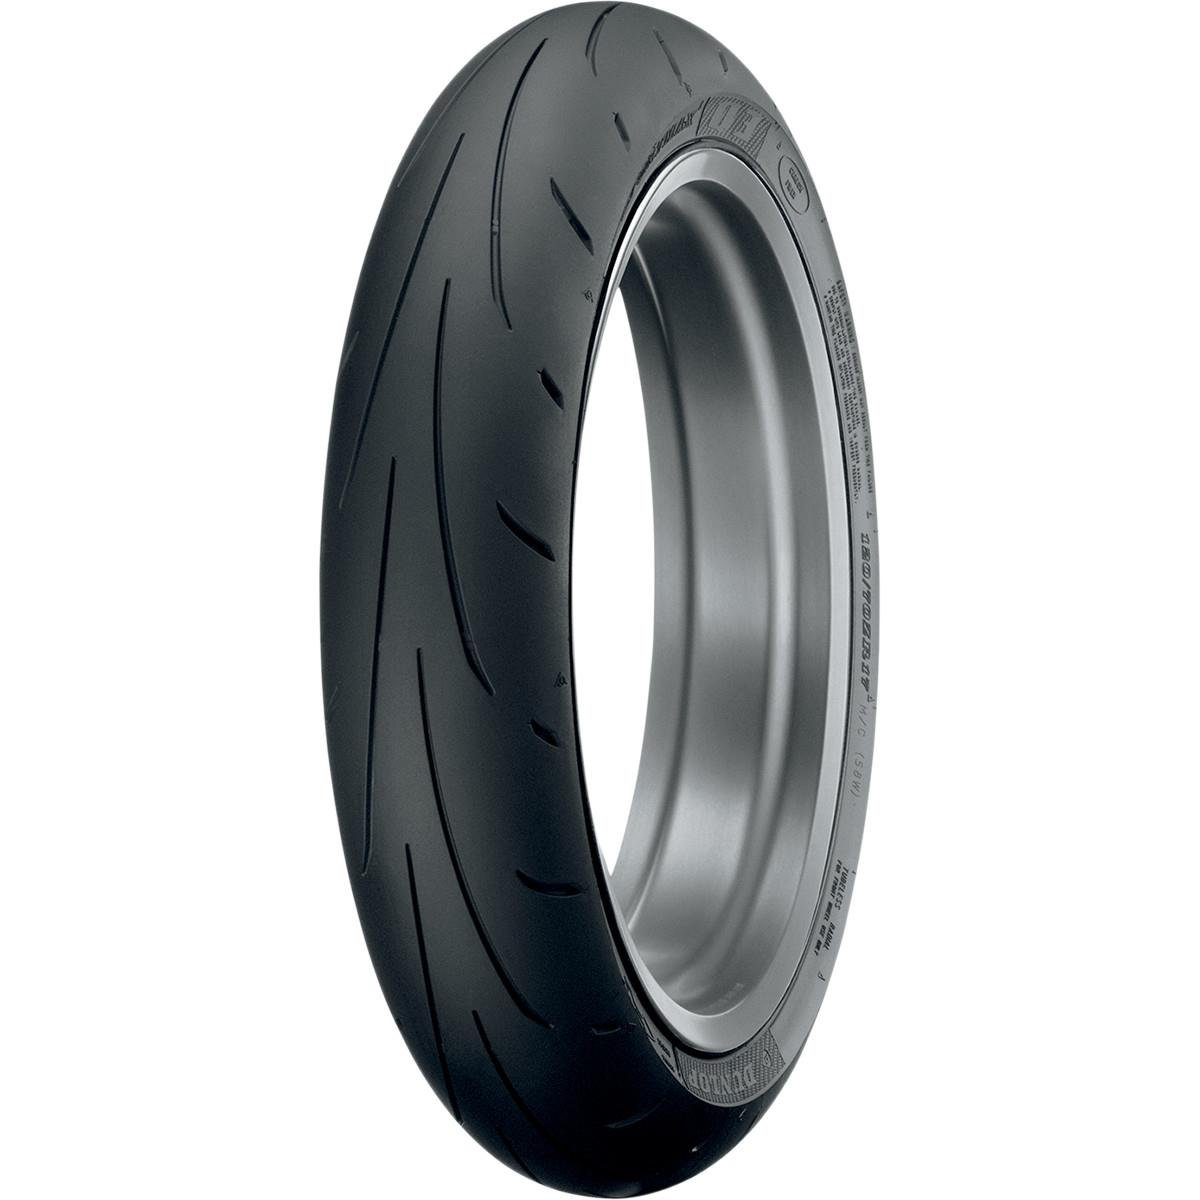 Dunlop Tires Sportmax Q3 Tire - Front - 120/70ZR-17 , Position: Front, Speed Rating: W, Tire Type: Street, Tire Construction: Not Available, Tire Application: Sport, Tire Size: 120/70-17, Rim Size: 17, Load Rating: 58 by Dunlop Tires